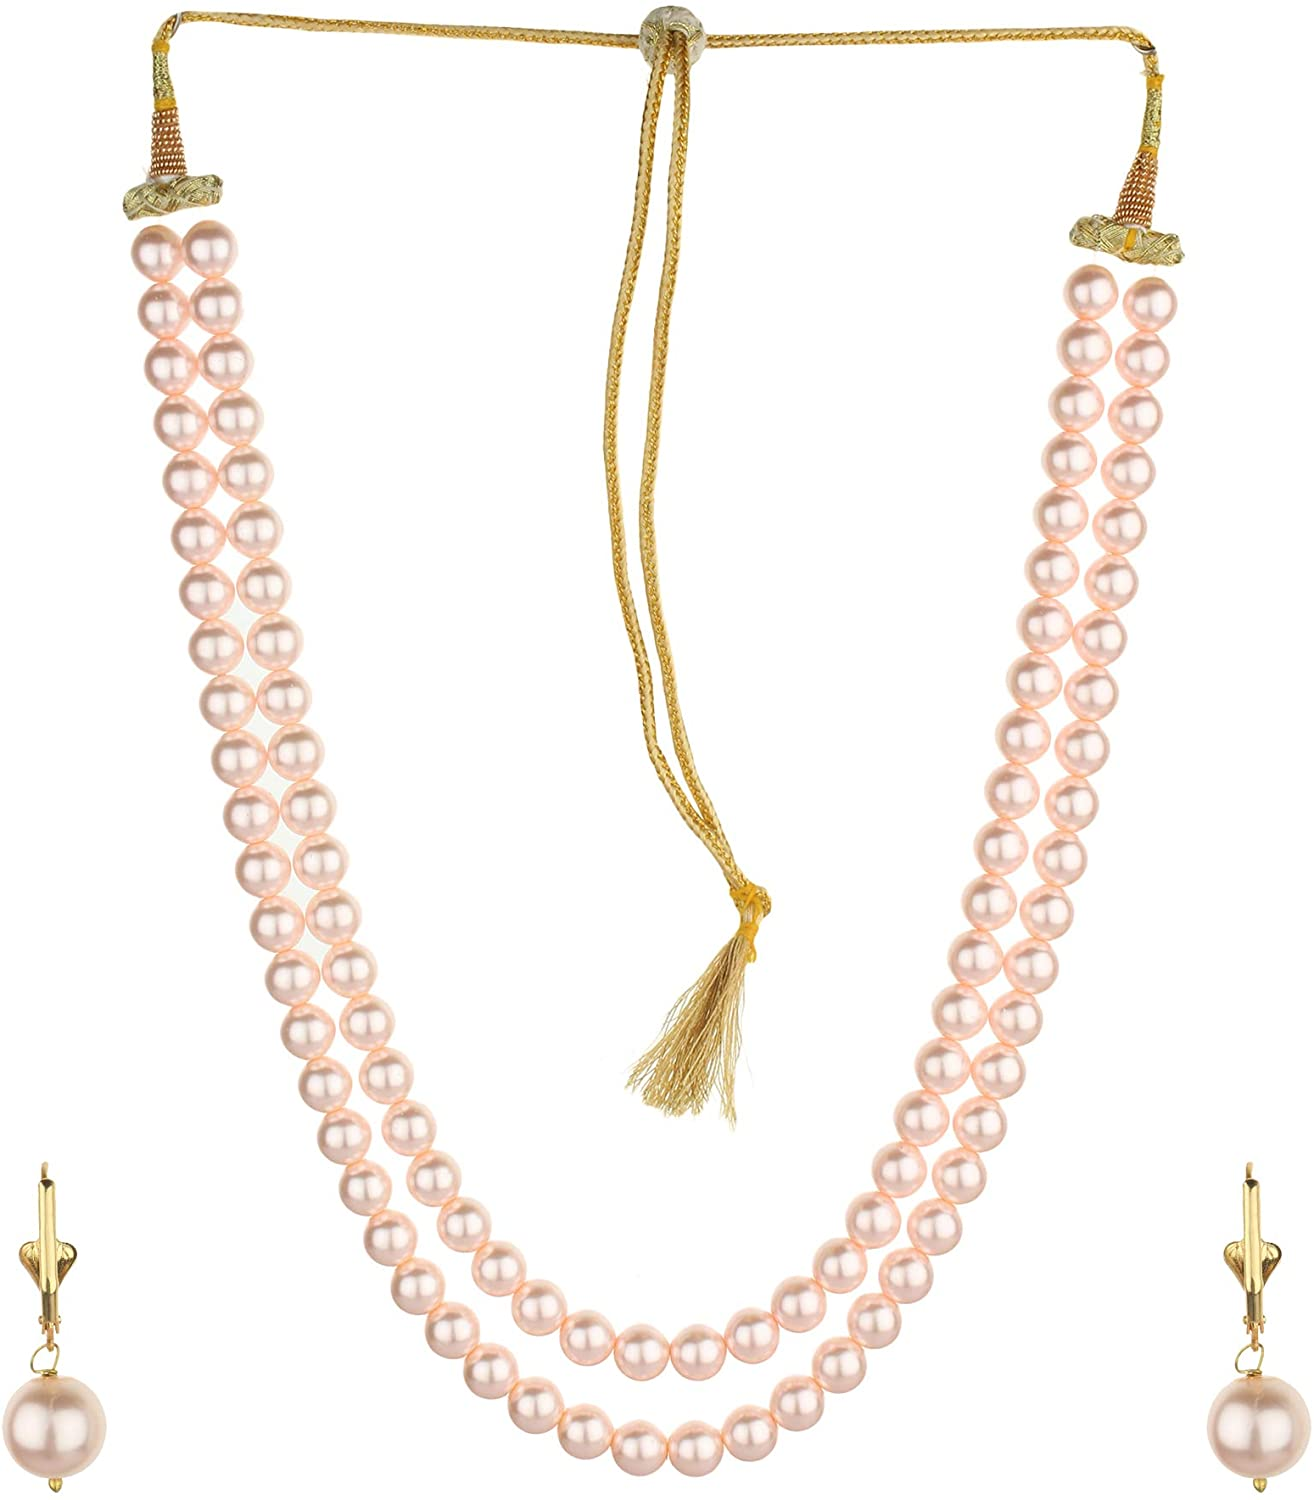 Runjhun Jewellery Pink Imitation Pearl 10mm Bead Size 2 Layered Indian Necklace Mala Set for Women Girls